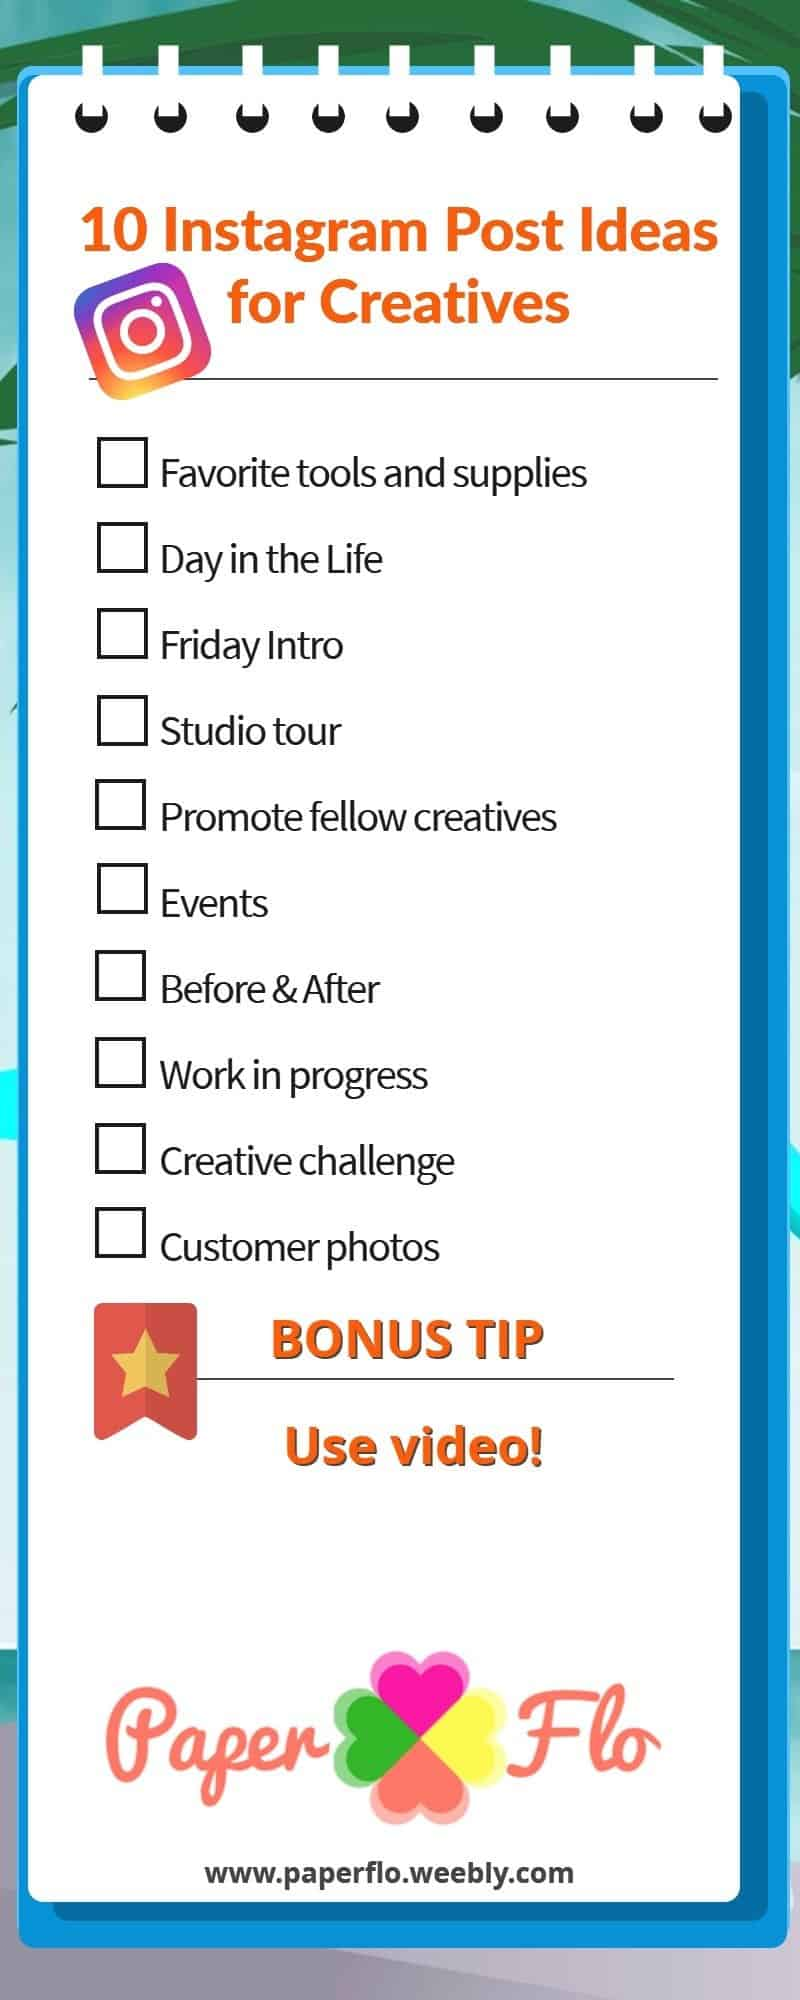 checklist 10 INSTAGRAM POST IDEAS FOR CREATIVES paperflo.weebly.com